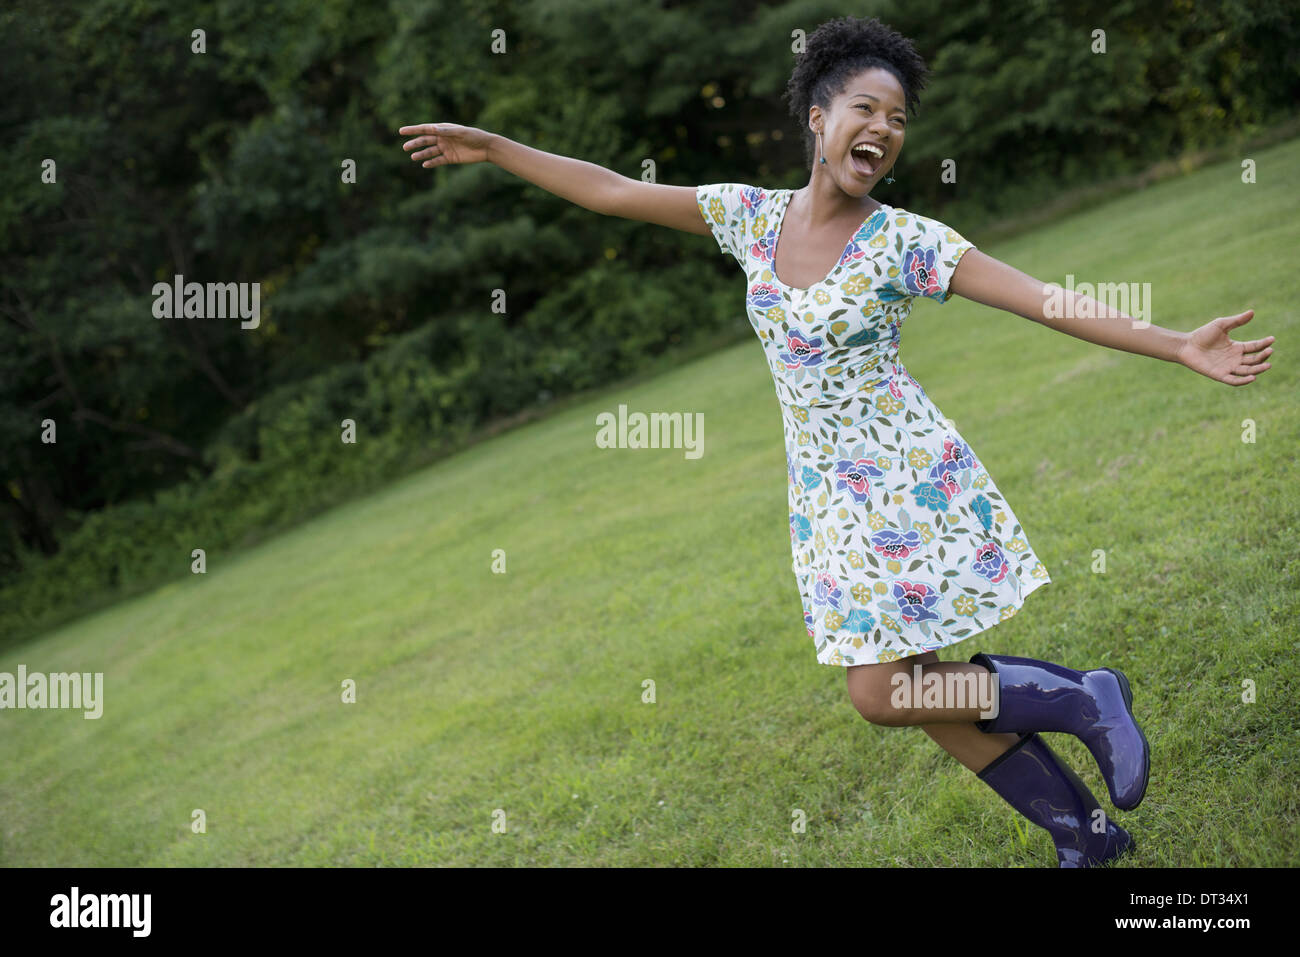 A young woman in a summer dress with her arms outstretched celebrating freedom - Stock Image